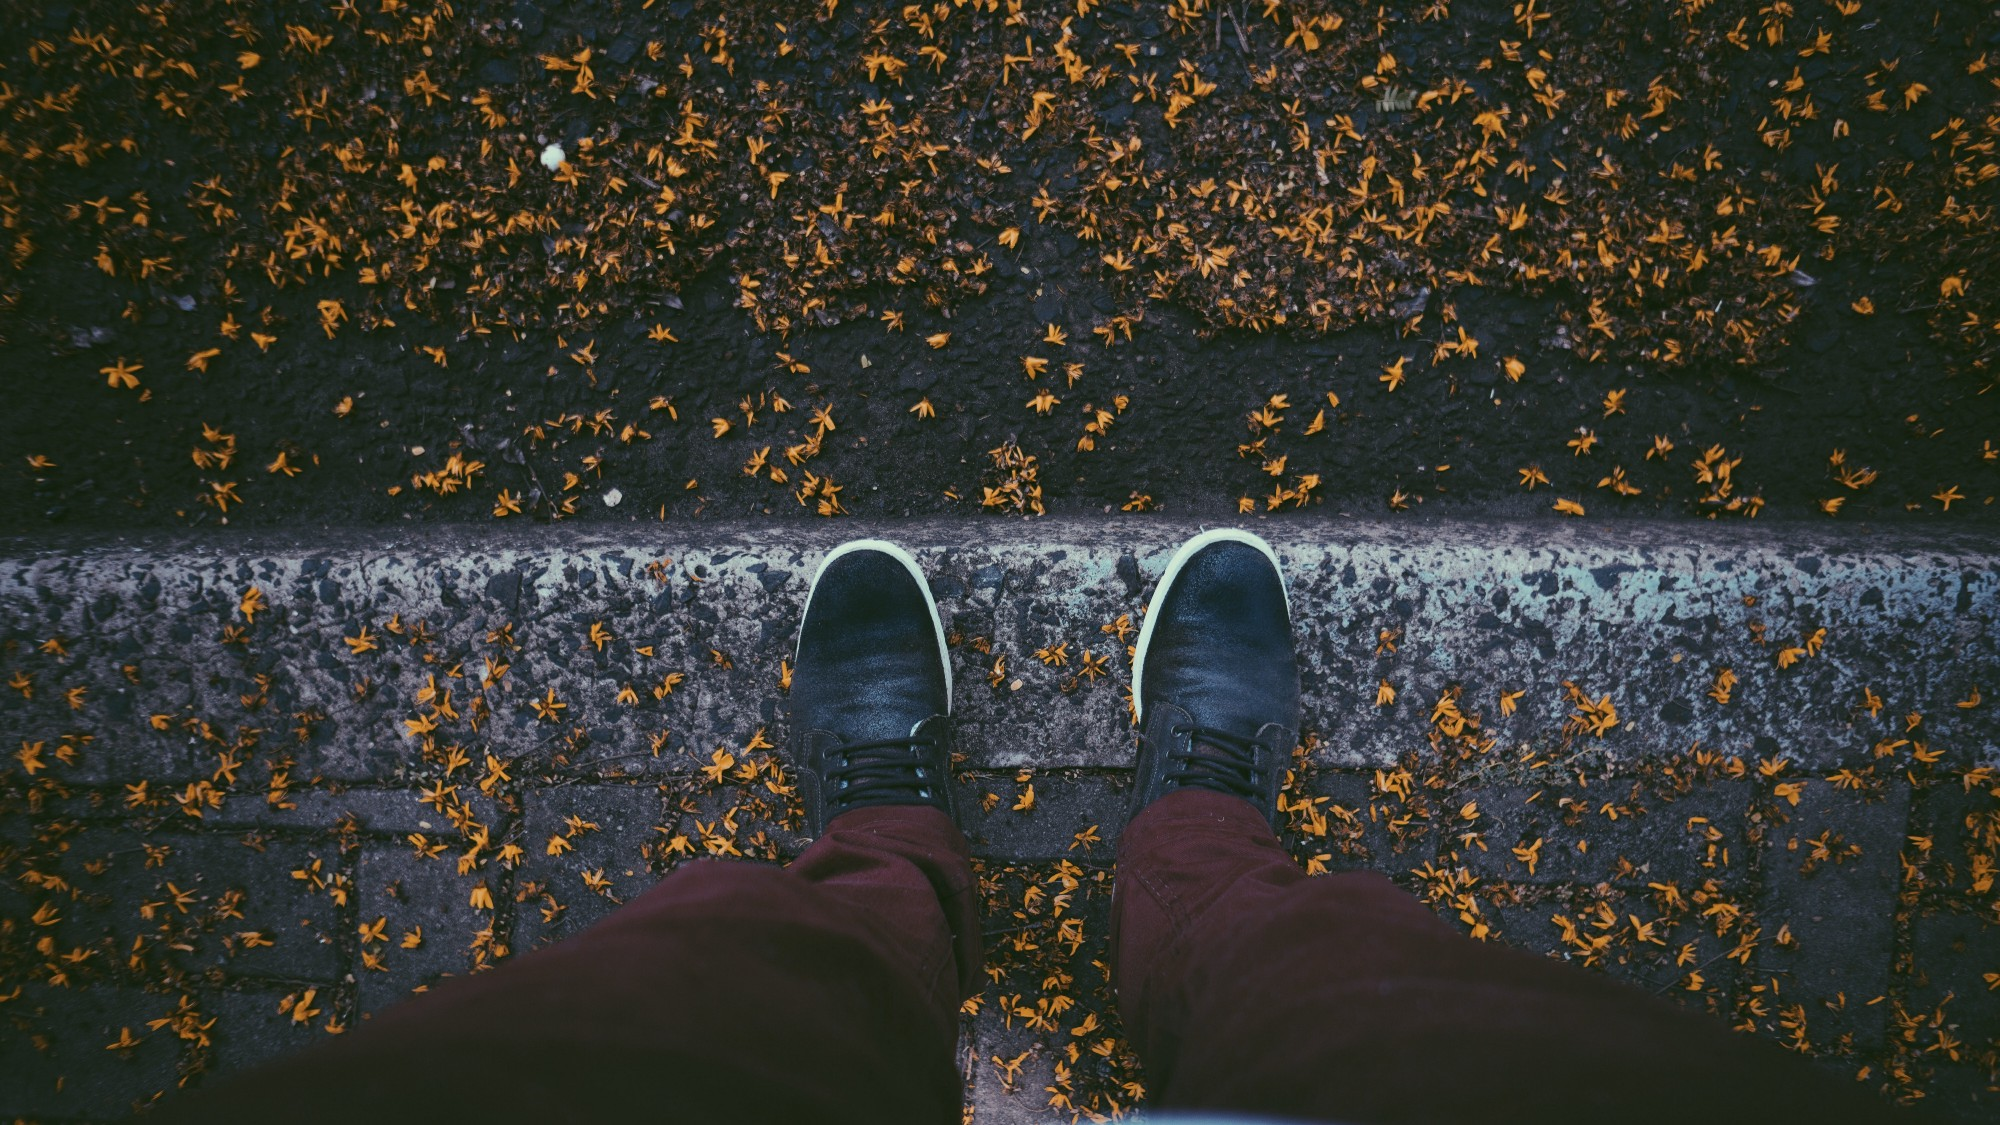 A photo of a person looking down at his shoes.